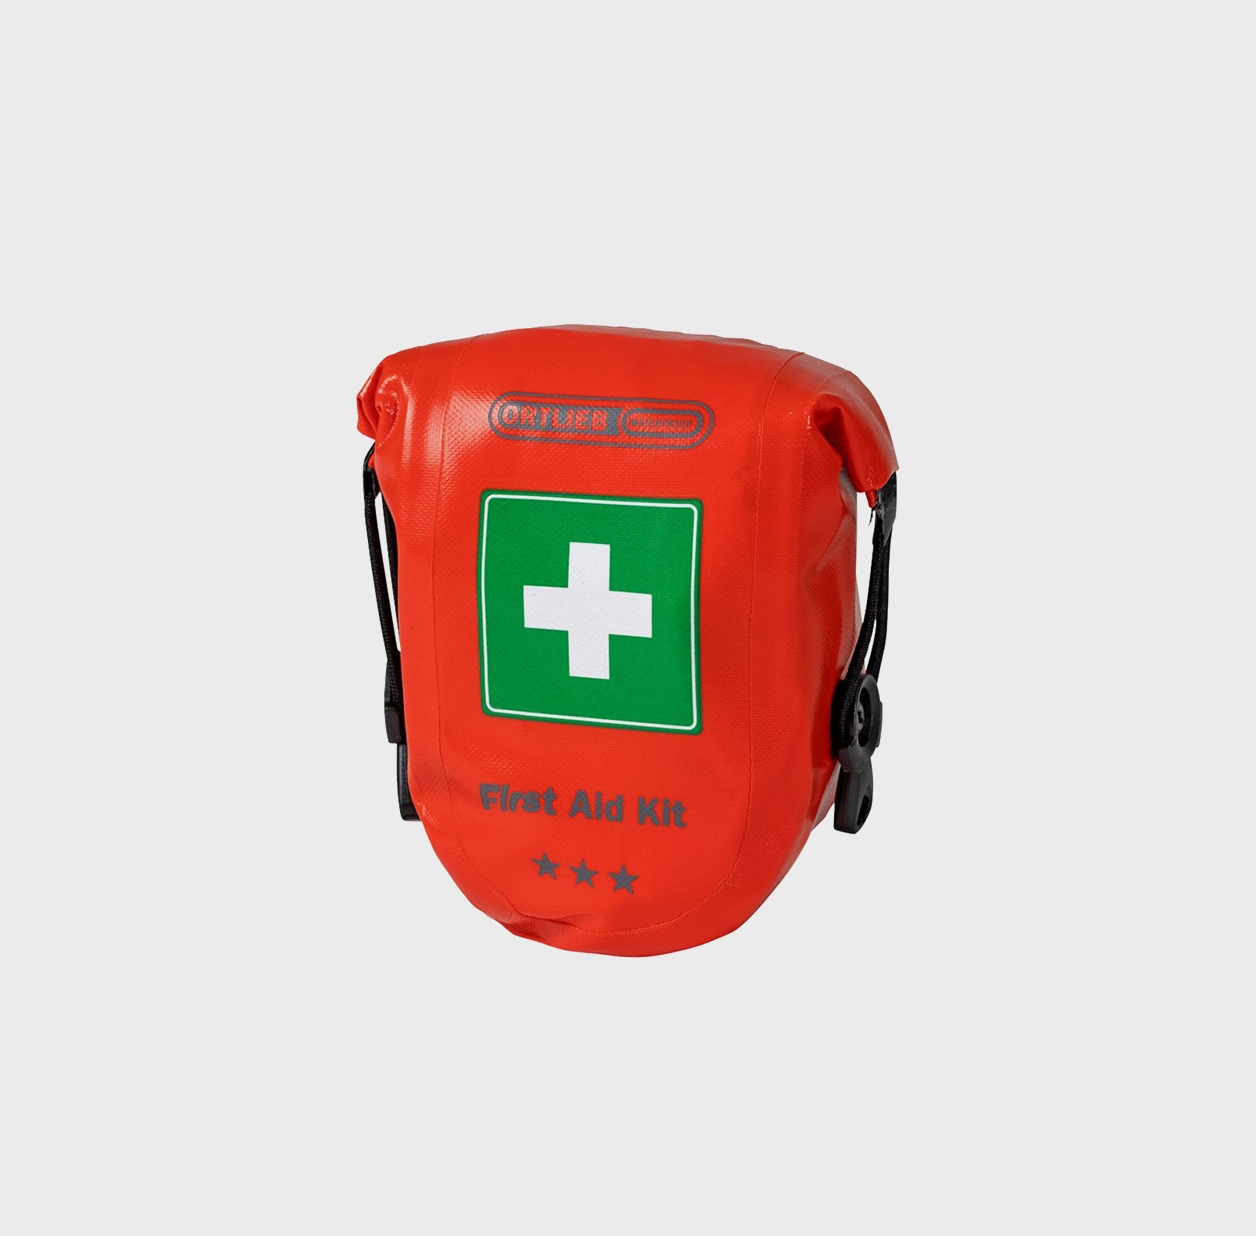 Outville_Mountainbike Ortlieb First Aid